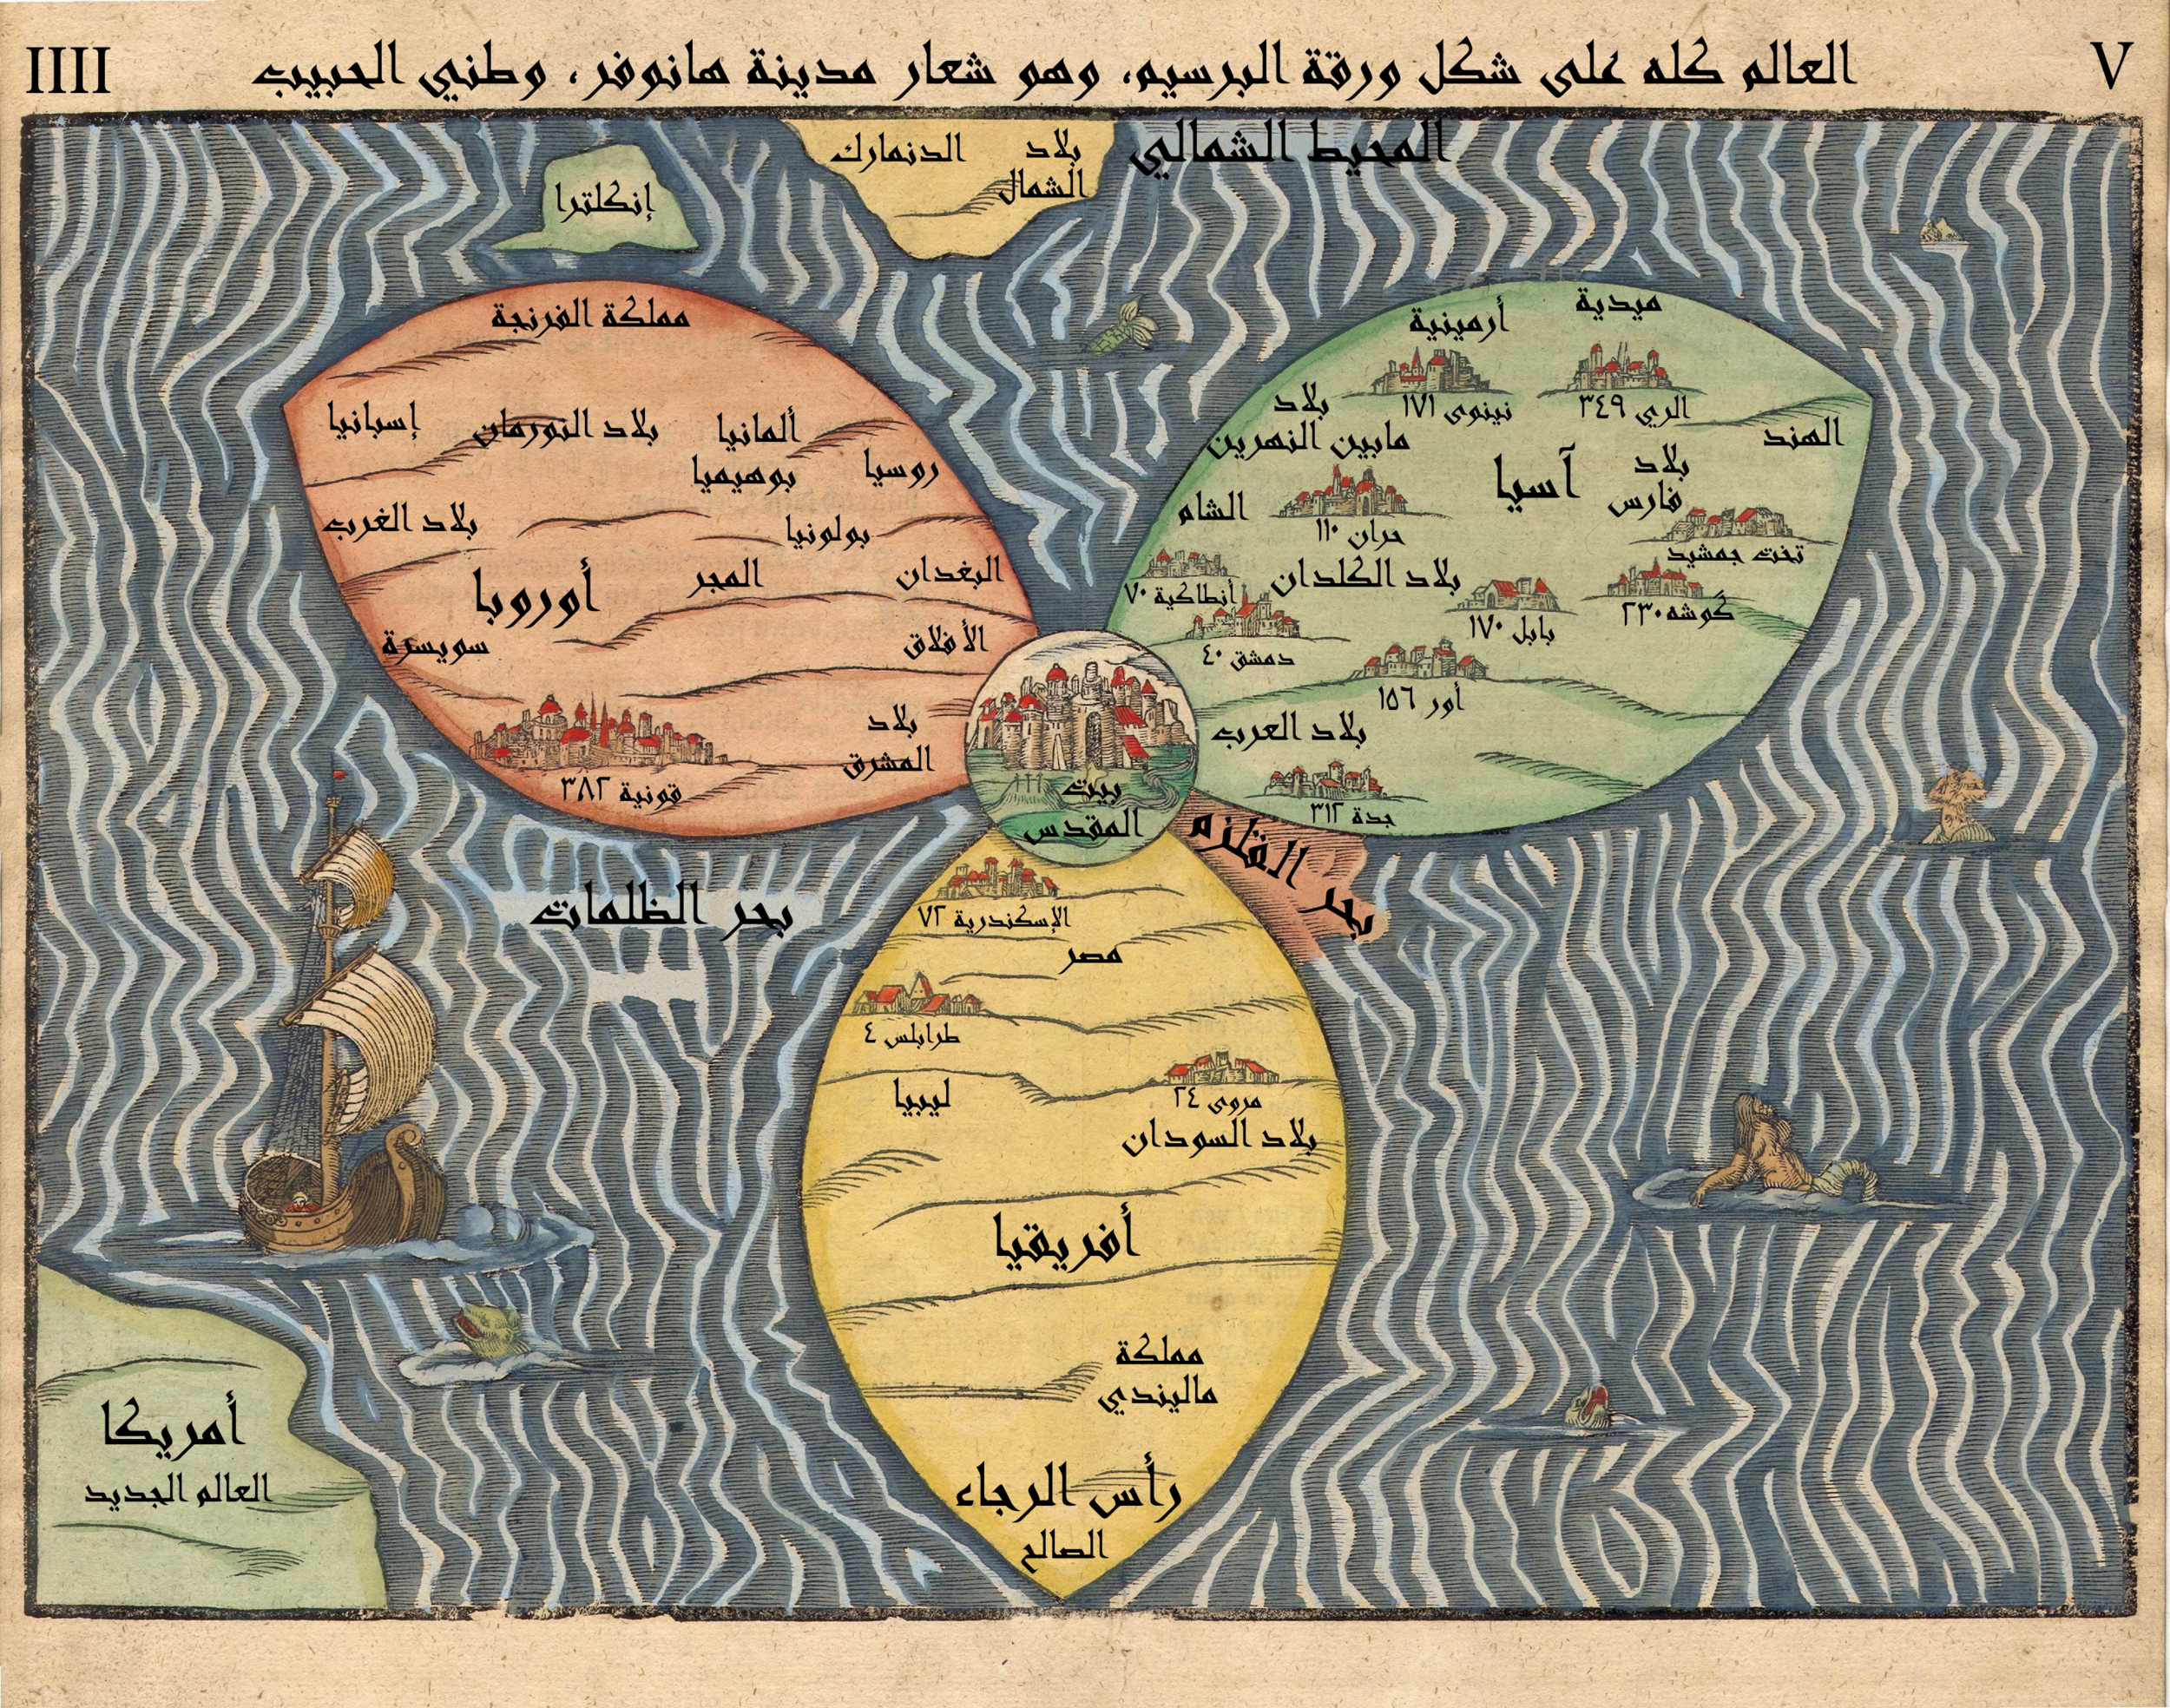 1581_Bunting_clover_leaf_map-ar.png